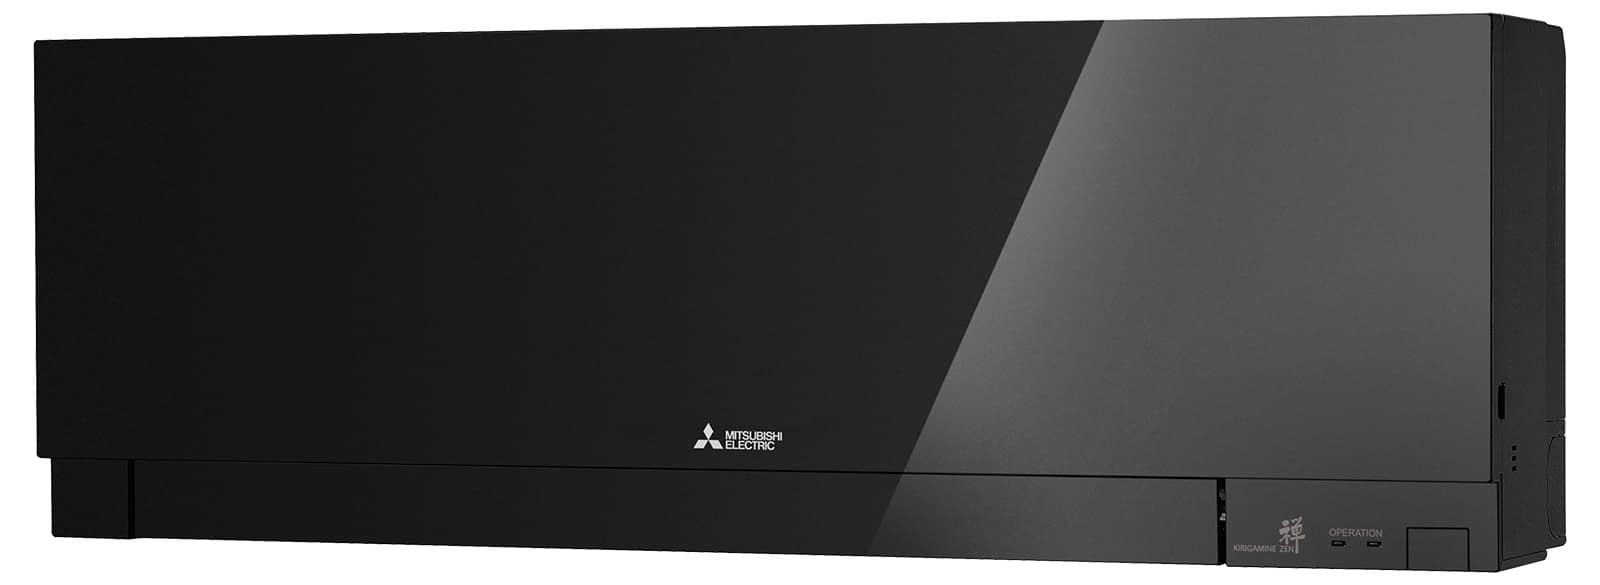 Внутренний блок Mitsubishi Electric MSZ-EF25VEB(black)